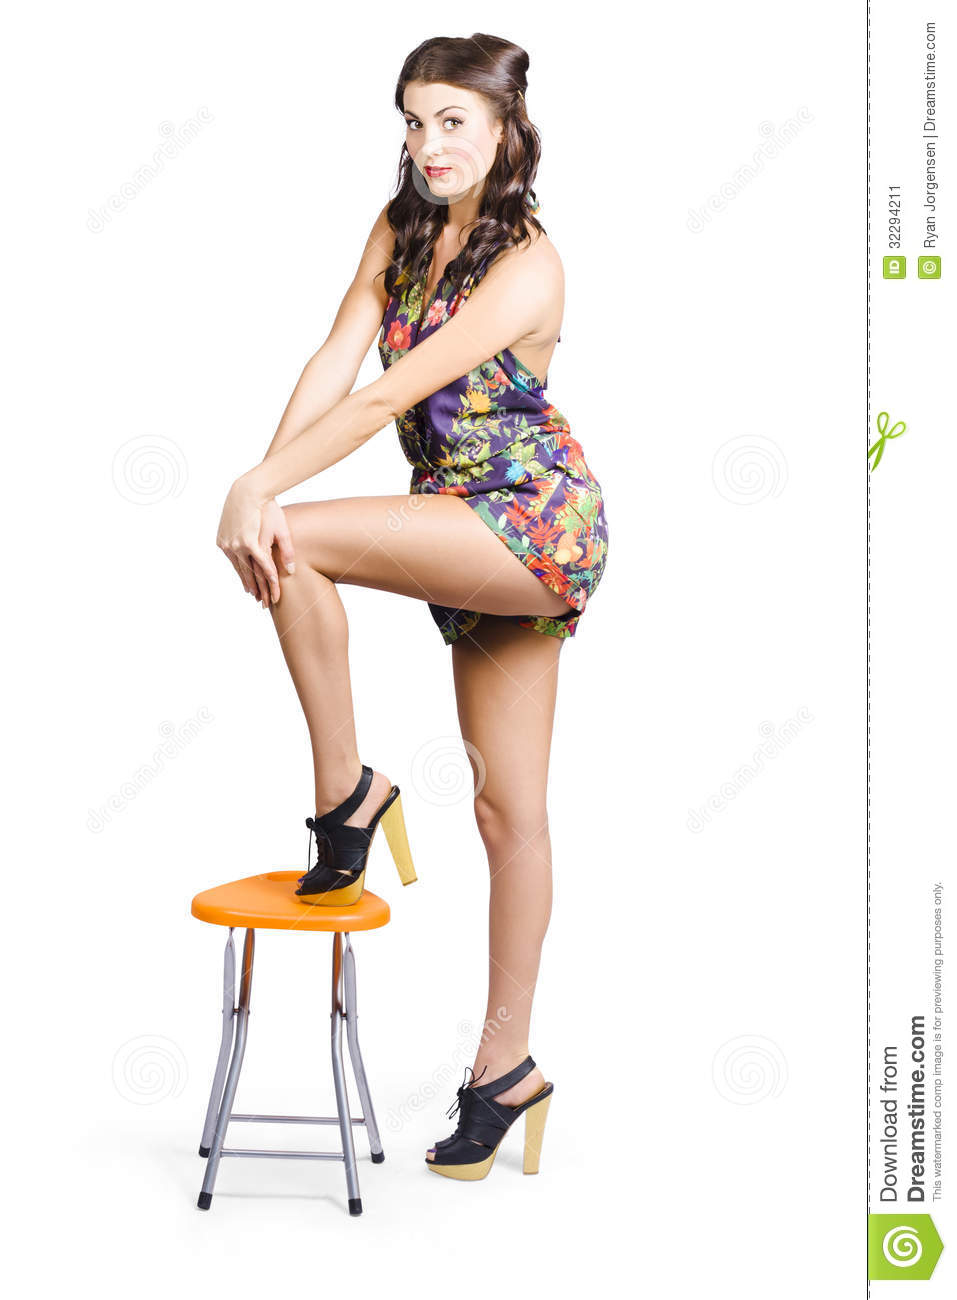 Stock Image Sexy Pin Up Model Posing Stylish Retro Fashion Long Silky ...